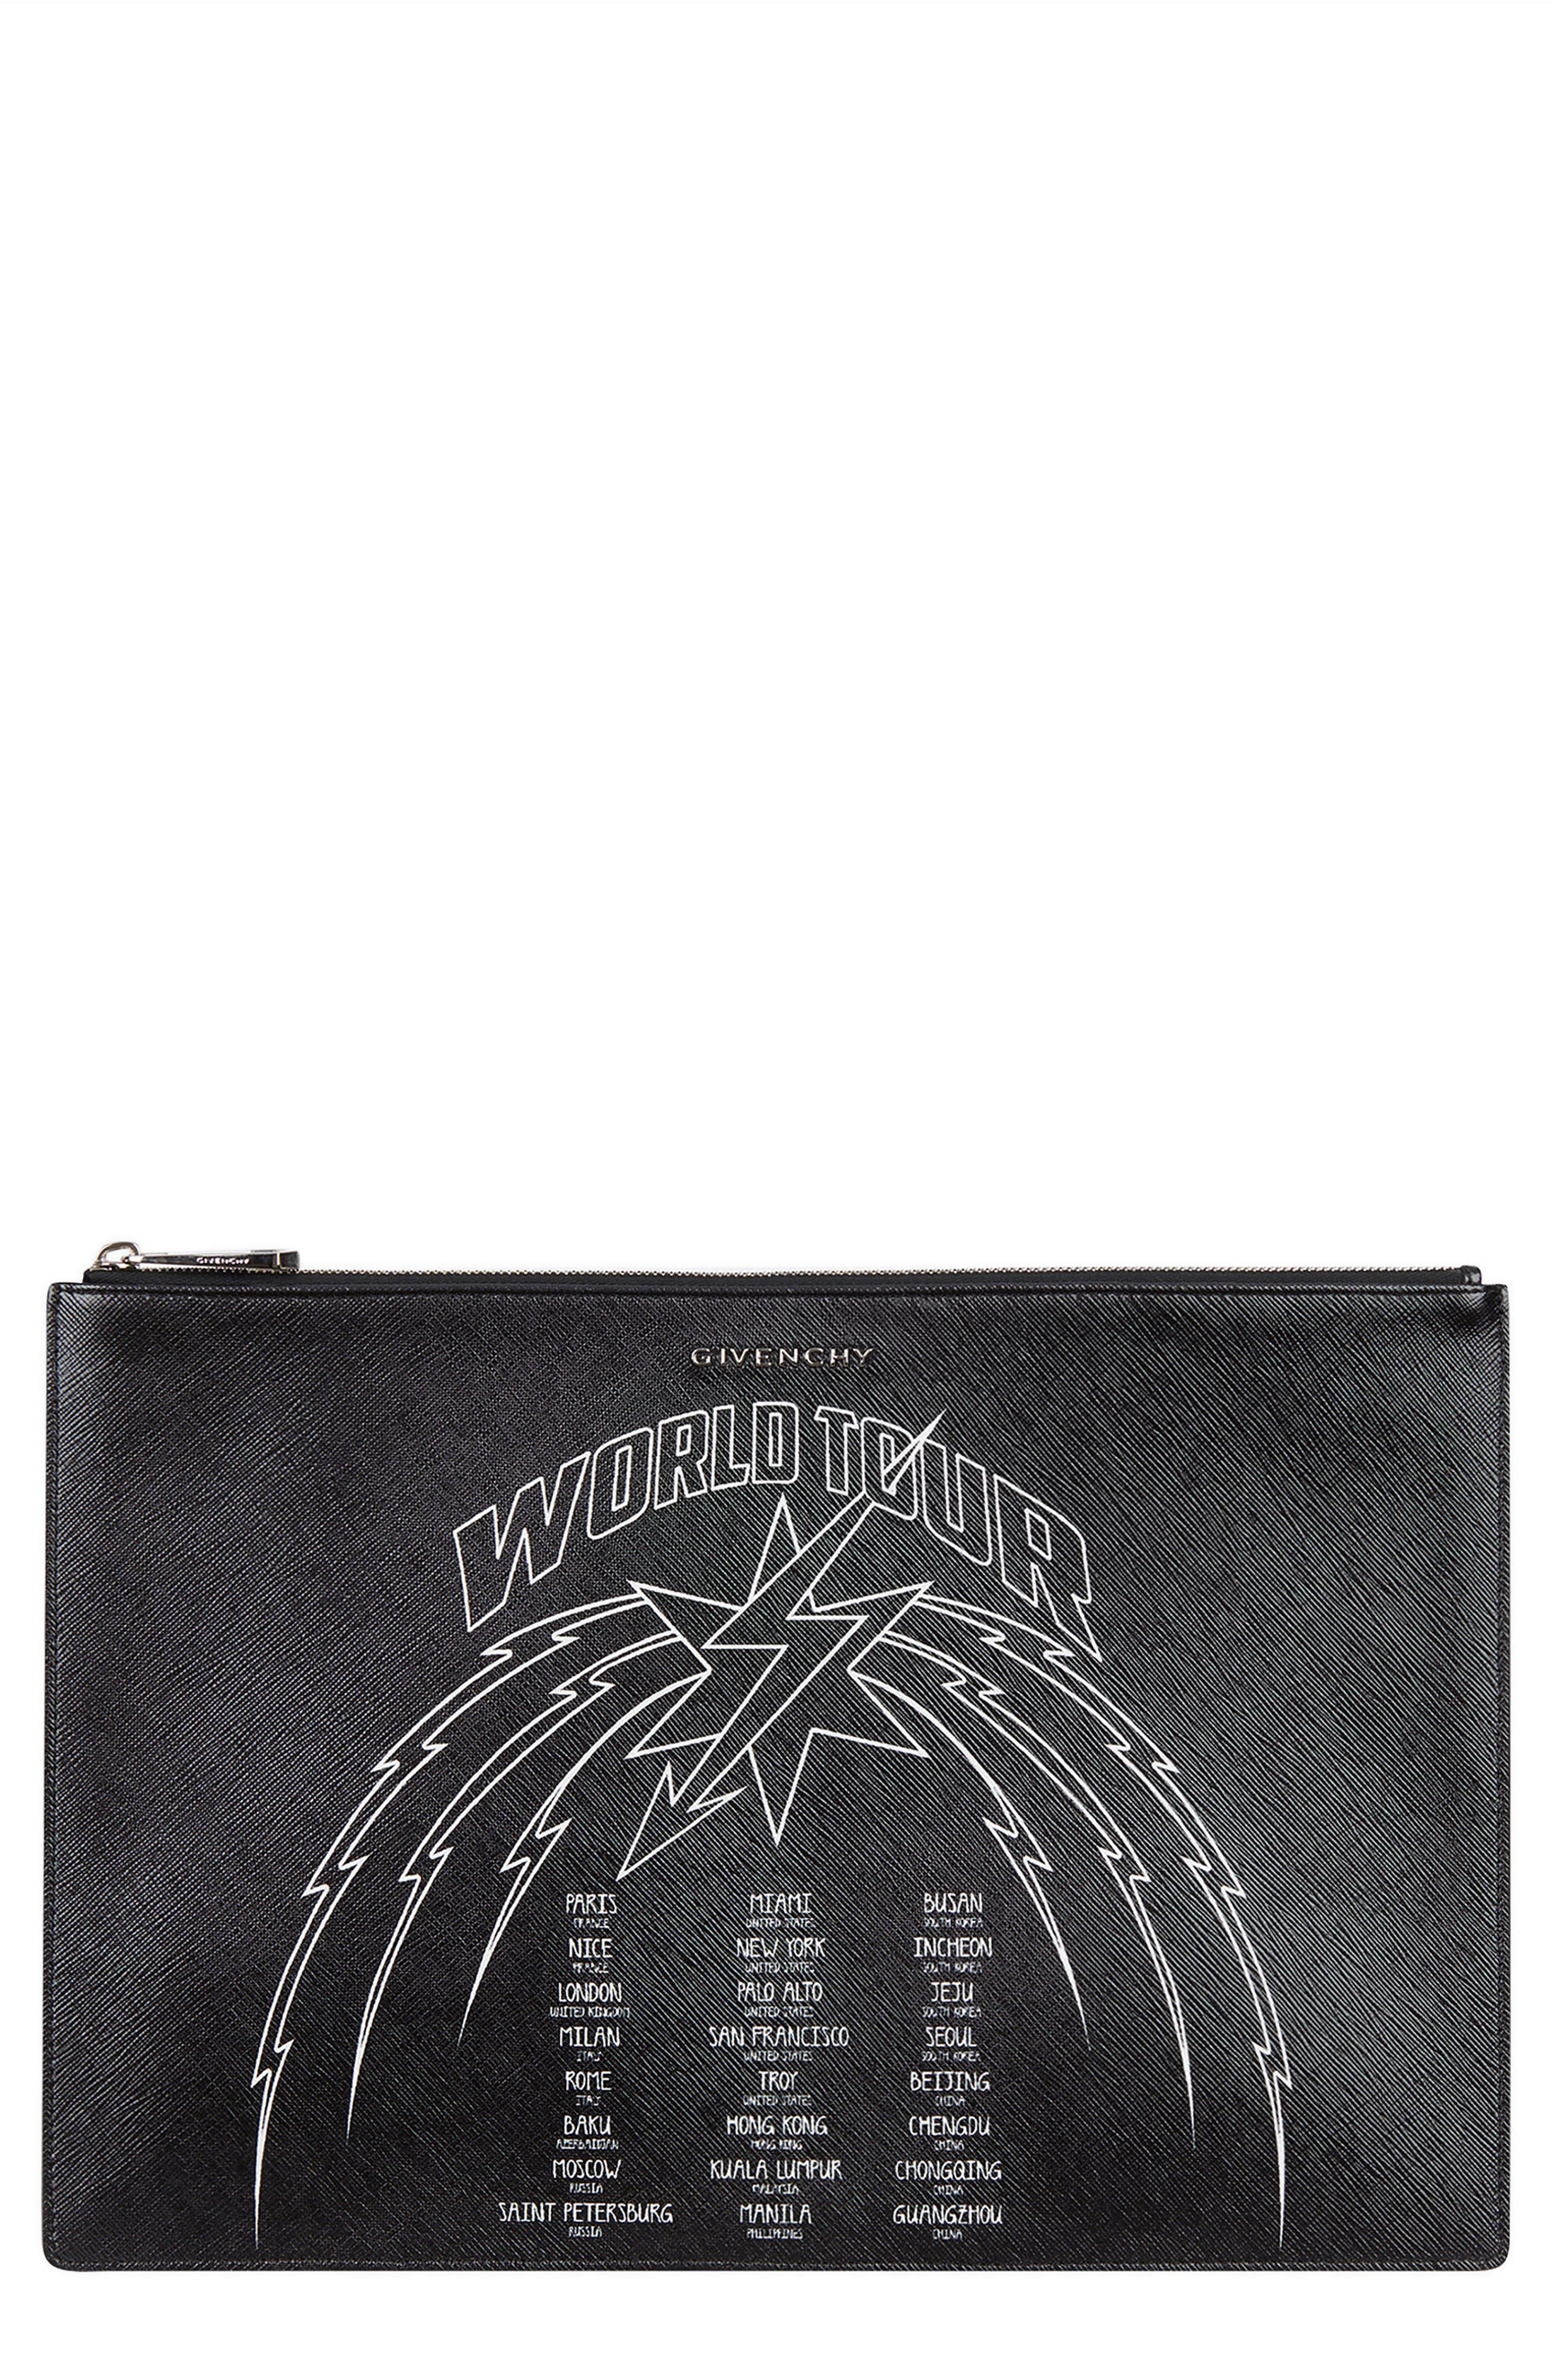 GIVENCHY, World Tour Graphic Pouch, Main thumbnail 1, color, BLACK/ WHITE